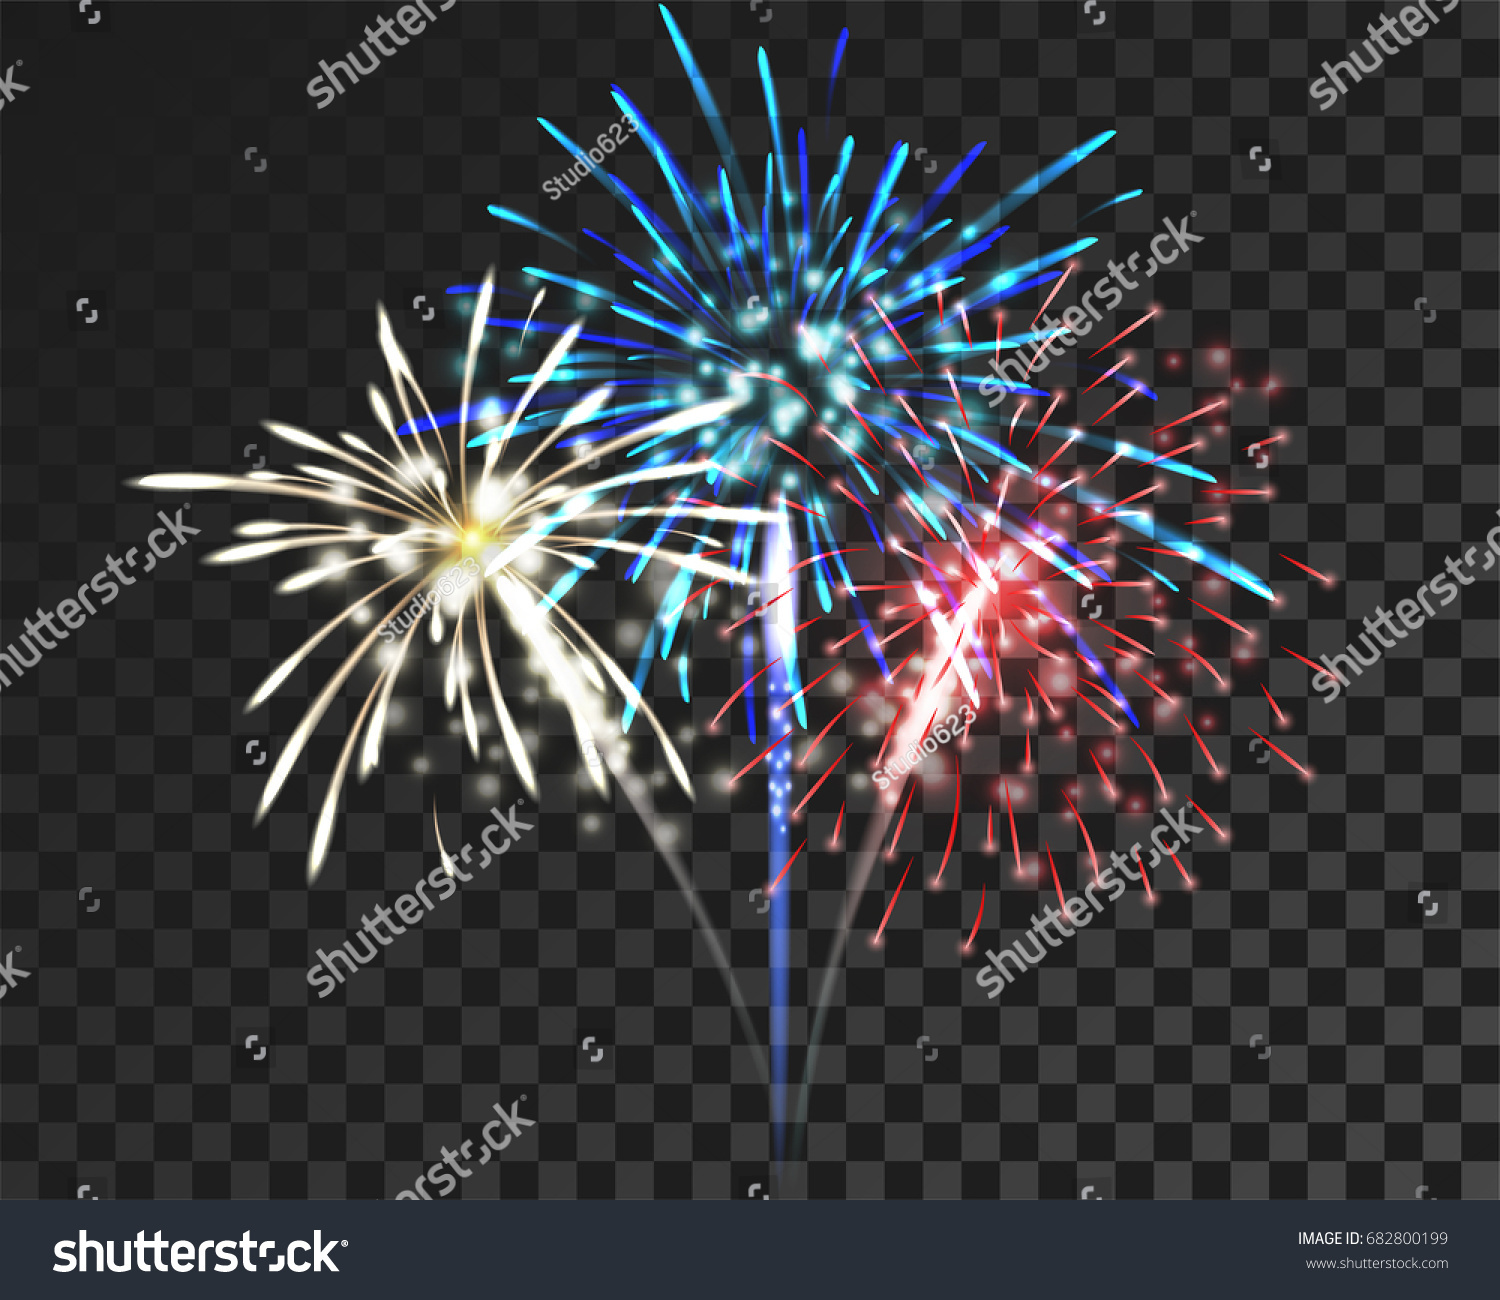 Isolate Colorful Firework Bursting In Vector Il Ration Concept For Salute Firework Template To Cele Te In